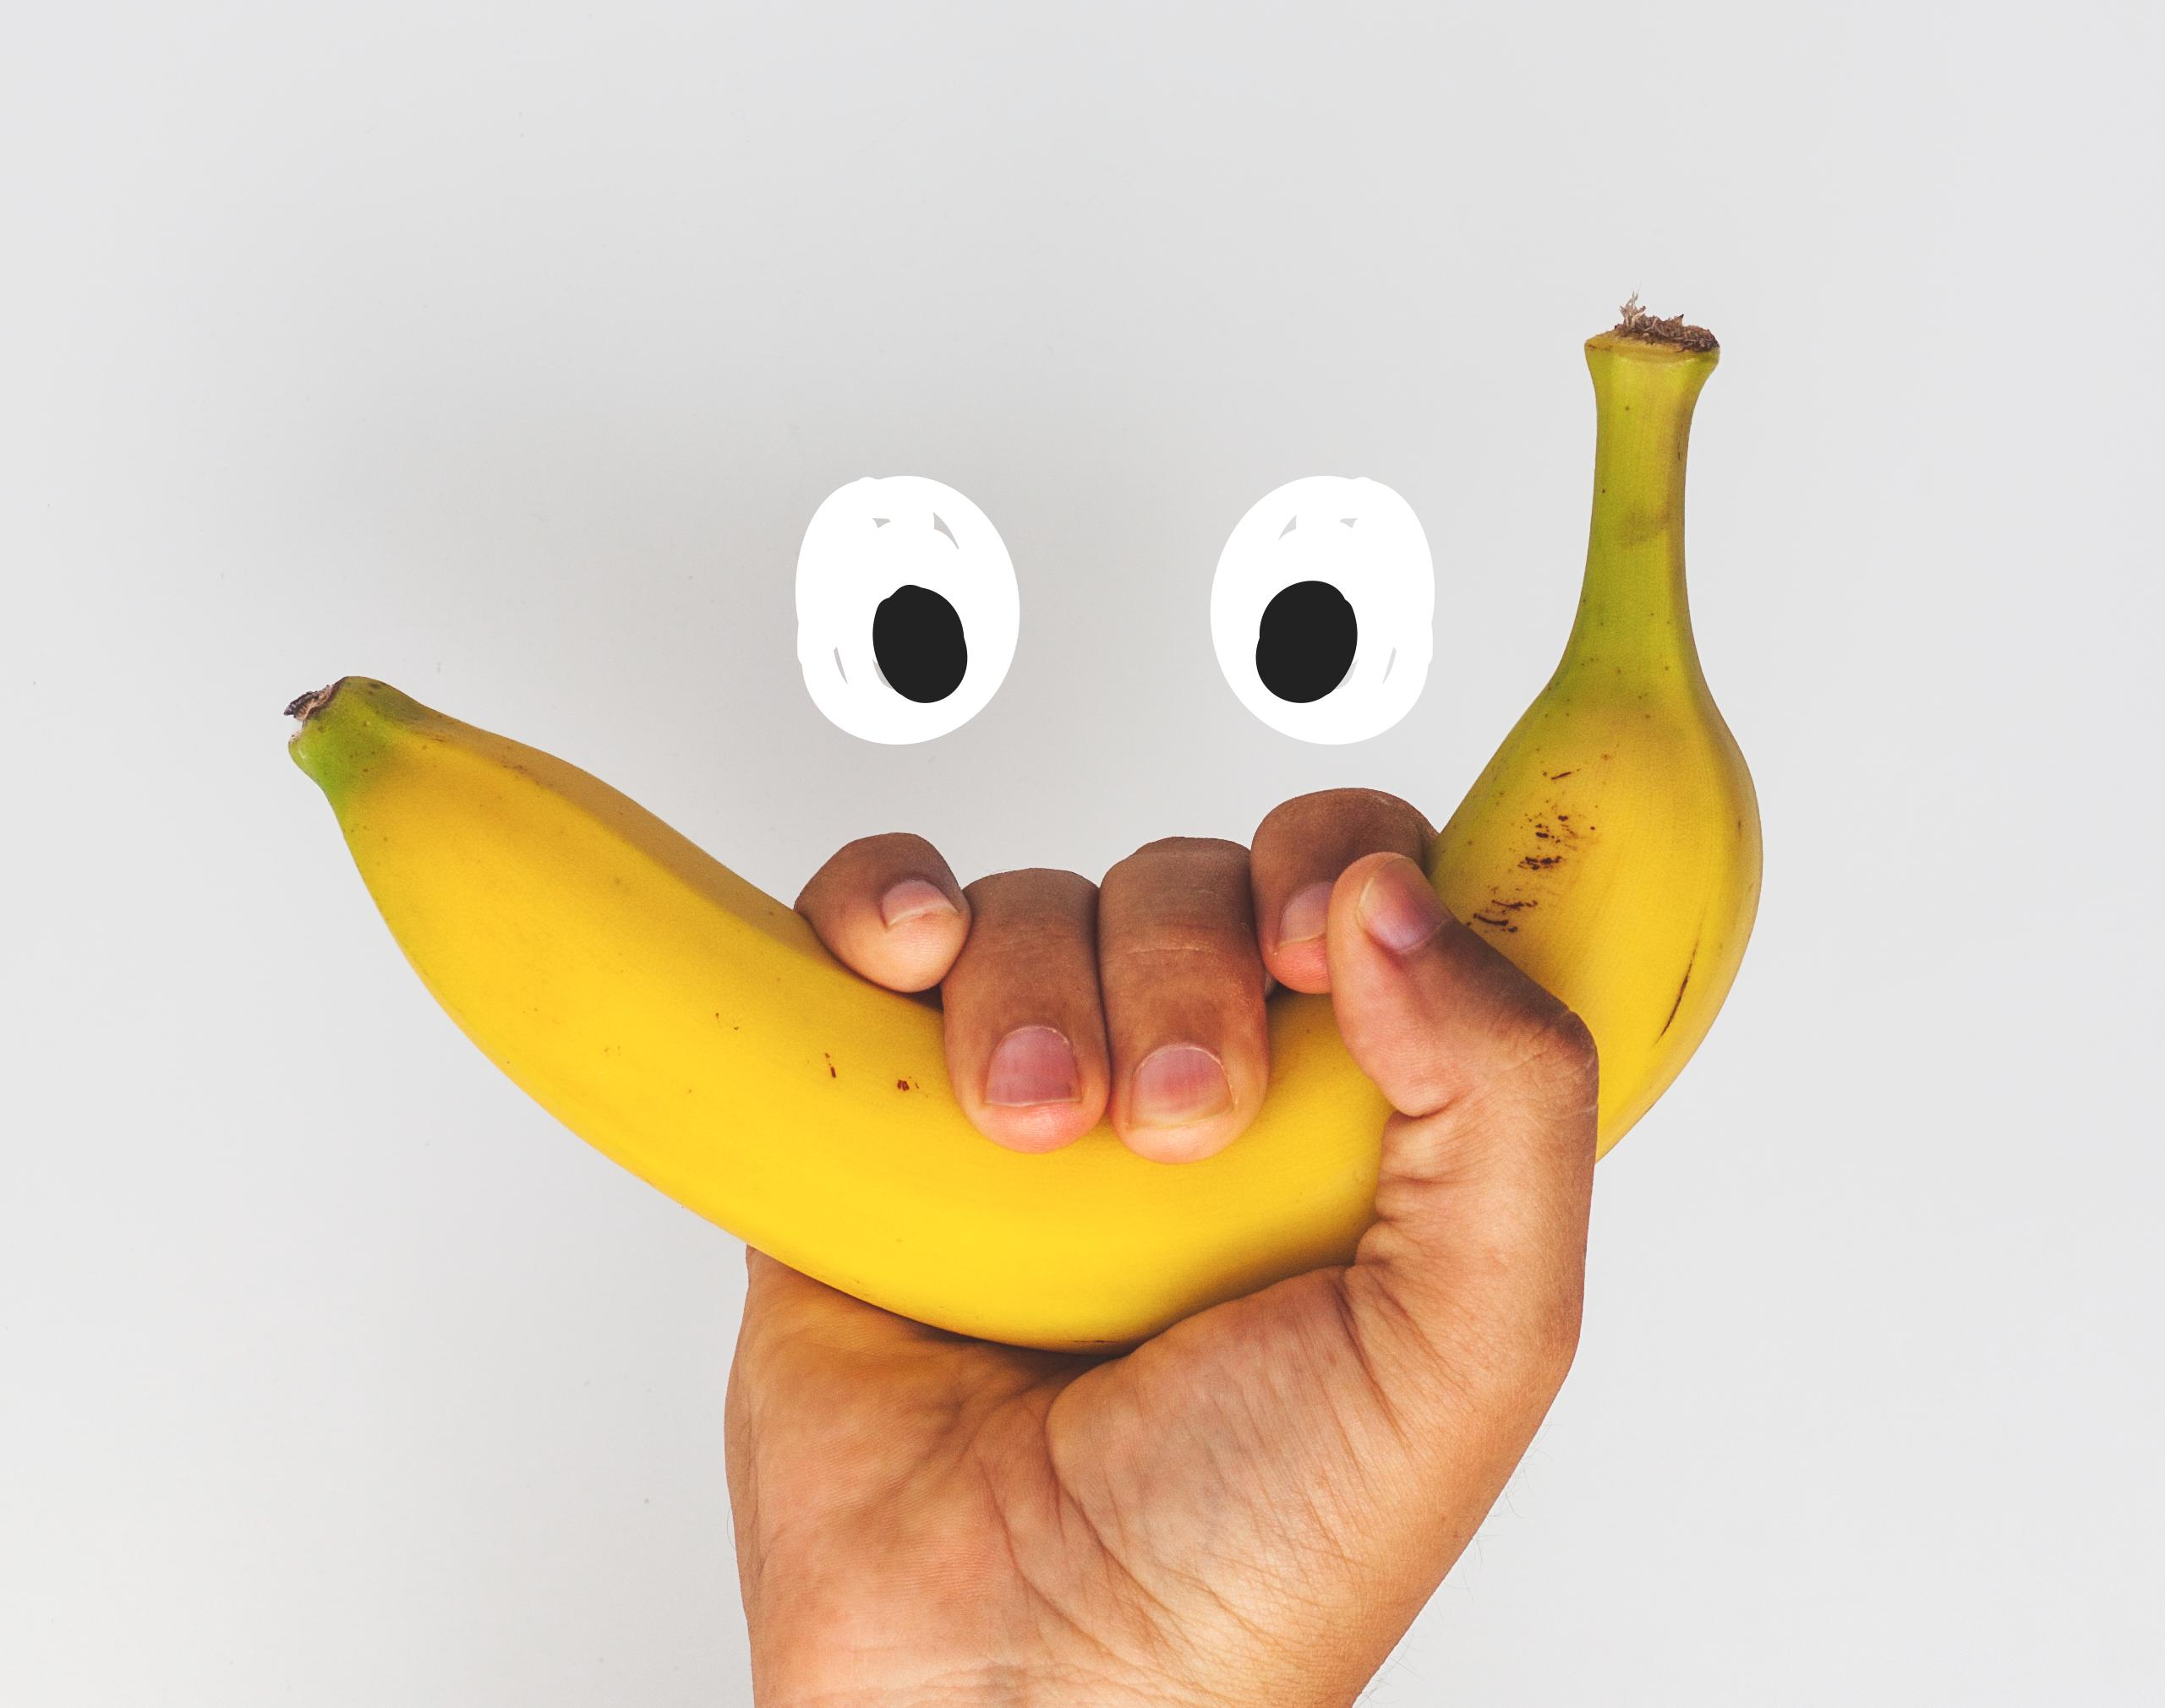 Hand holding a banana making a face